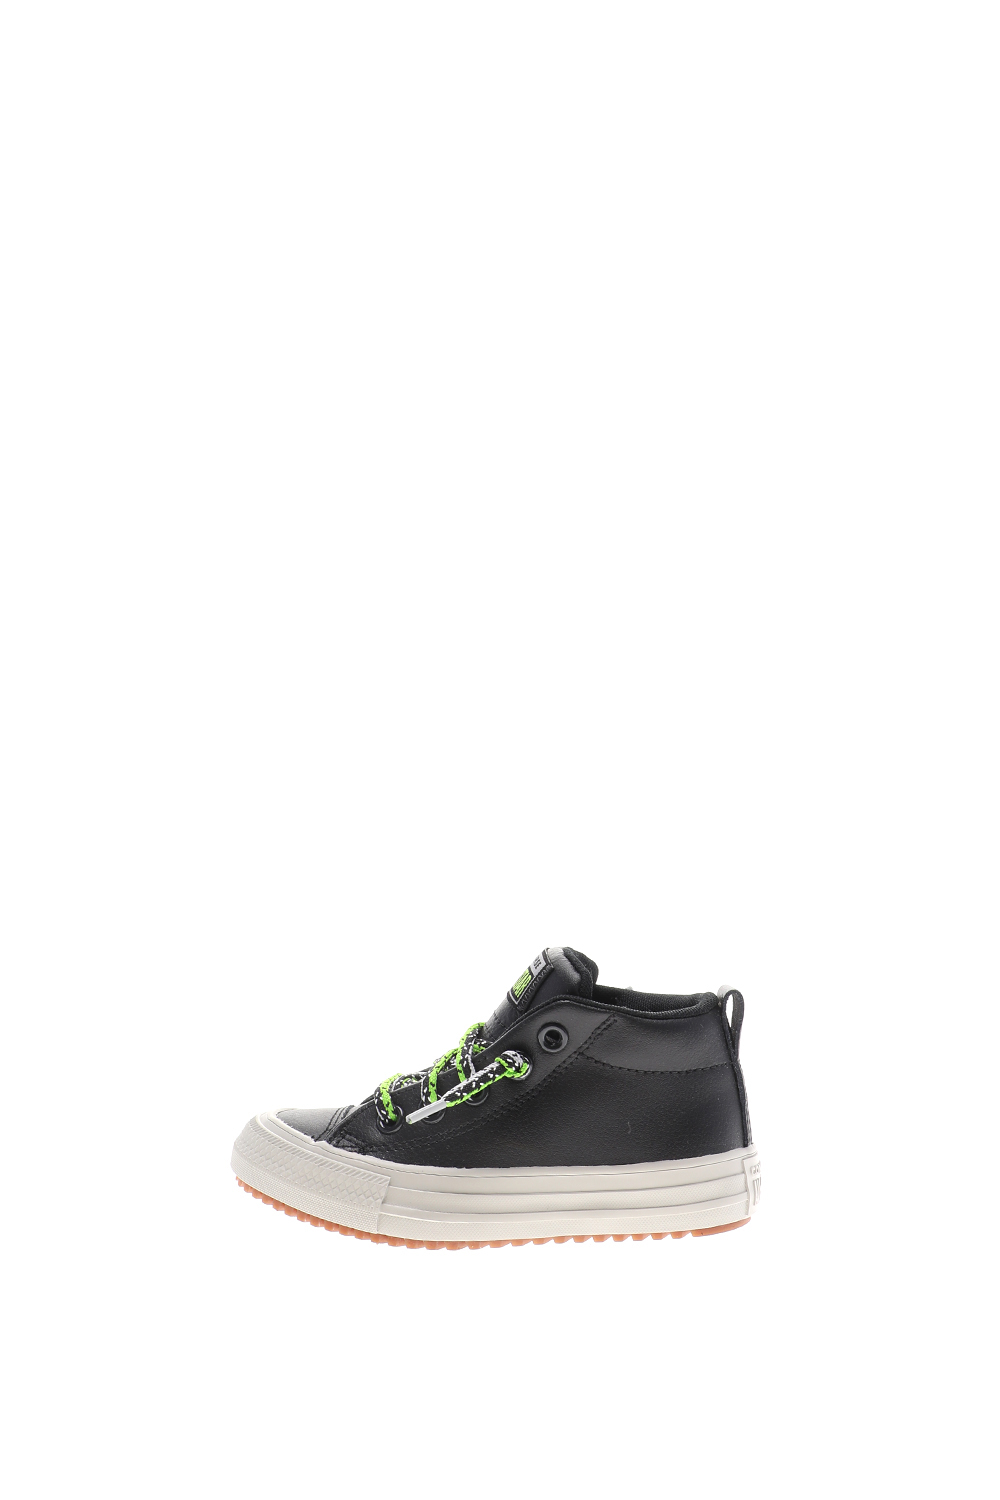 CONVERSE – Παιδικά sneakers CONVERSE Chuck Taylor All Star Street μαύρα